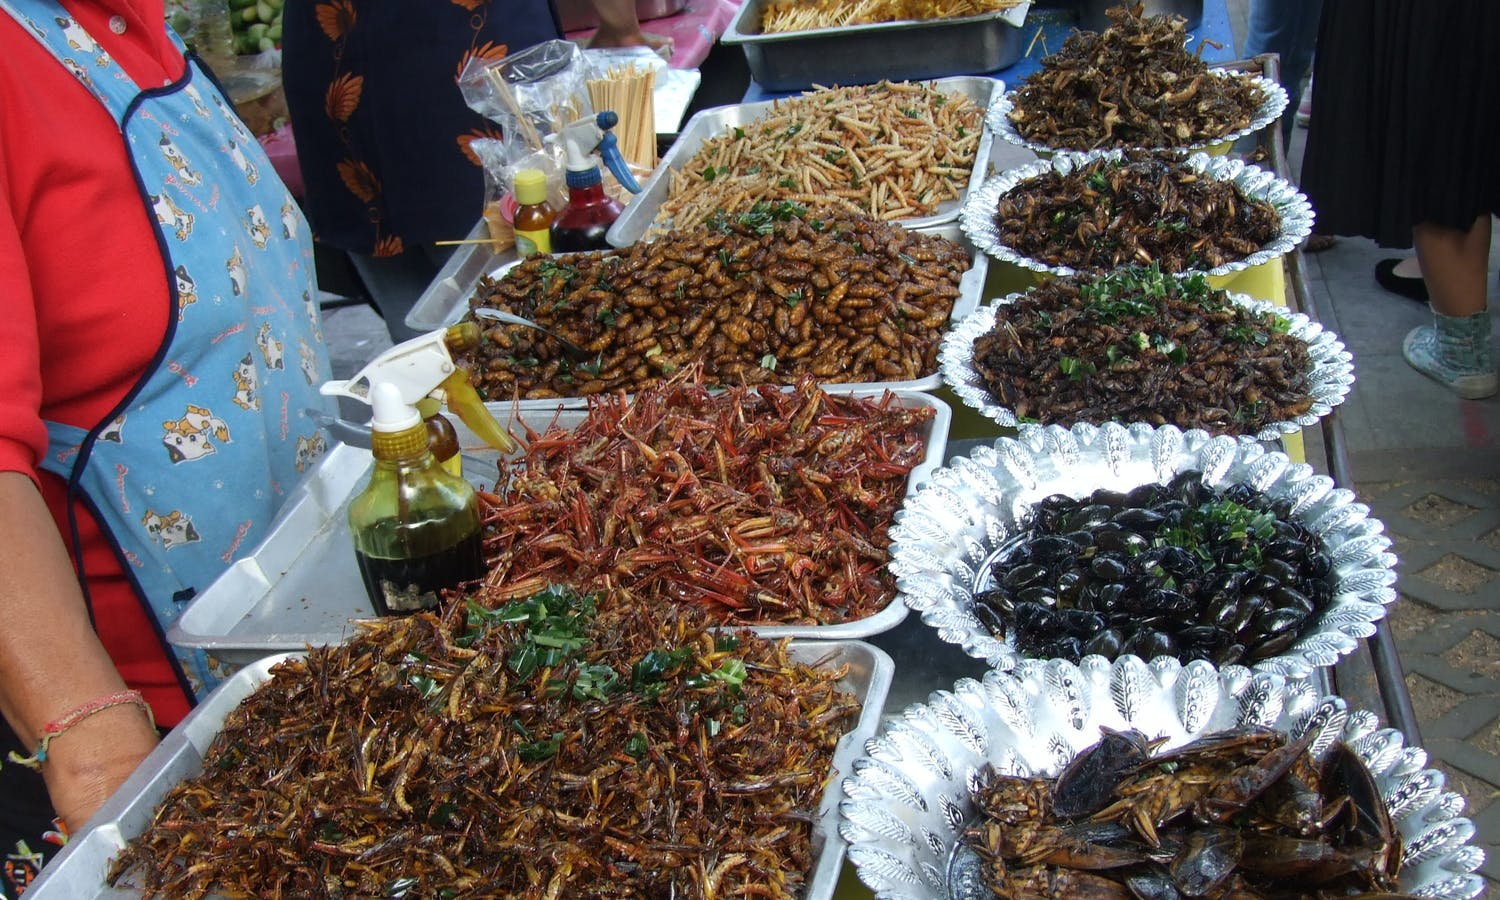 Market stall with insects in Thailand